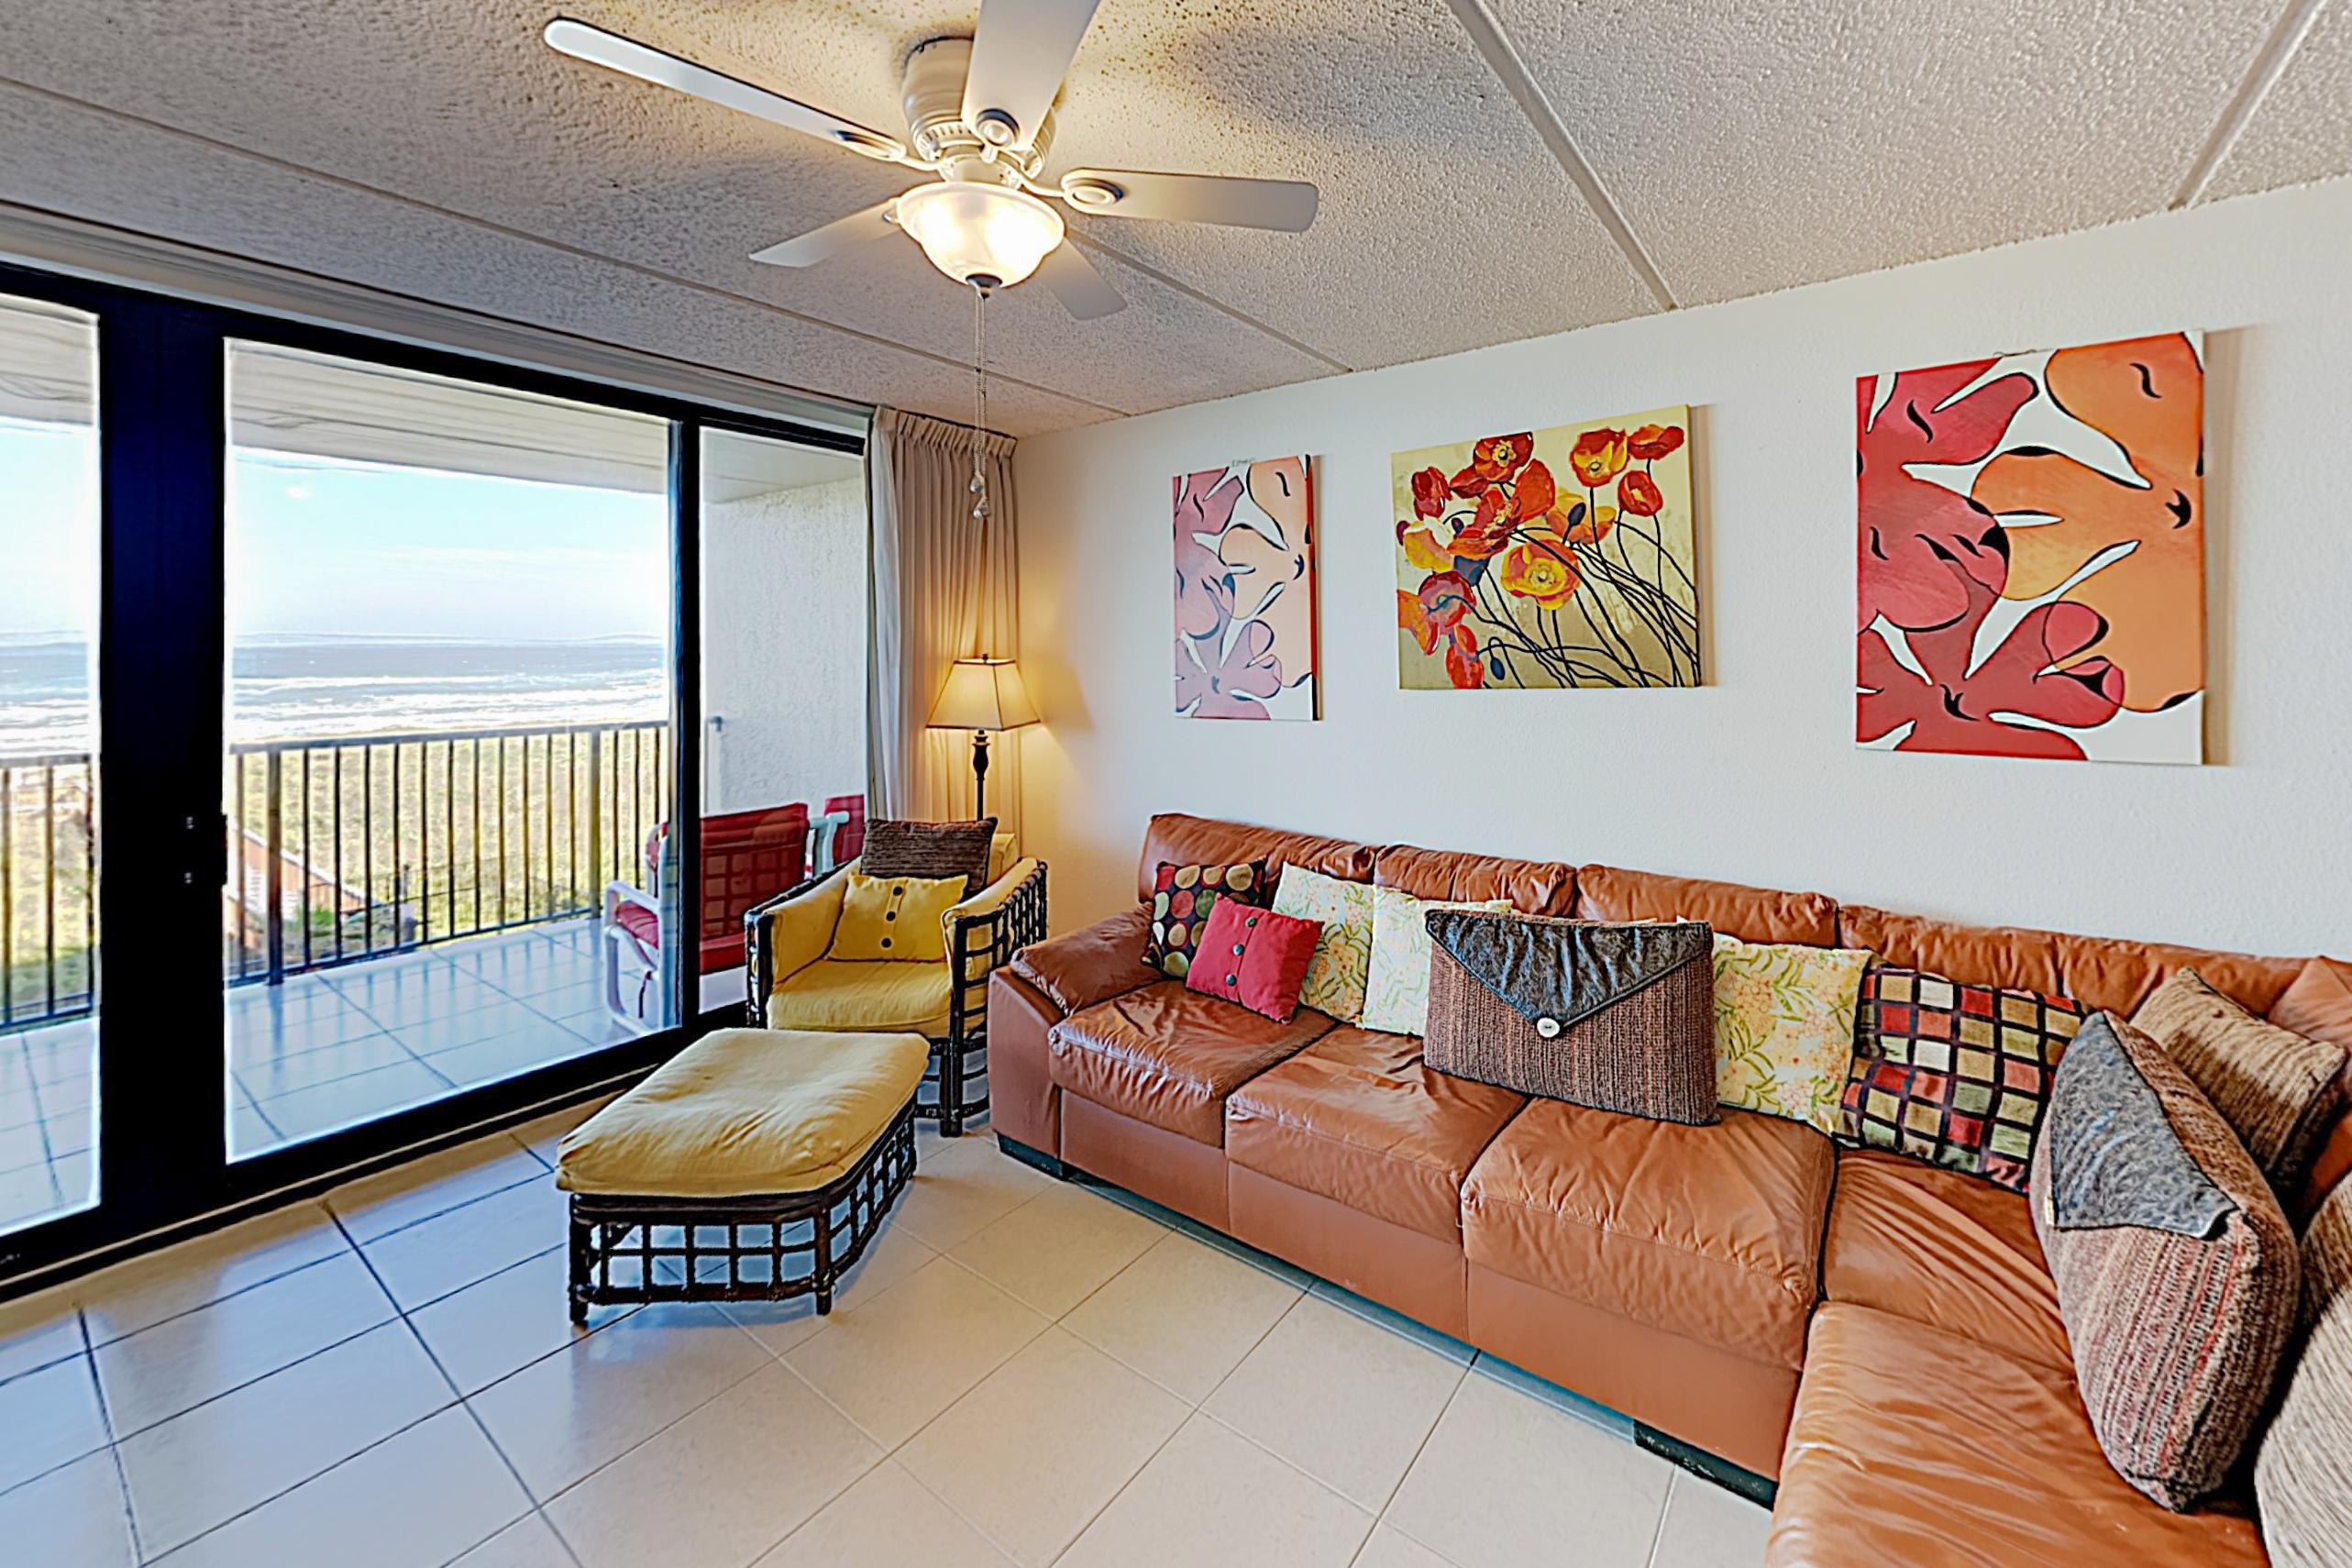 Welcome to Suntide III! This beachfront condo is professionally managed by TurnKey Vacation Rentals.